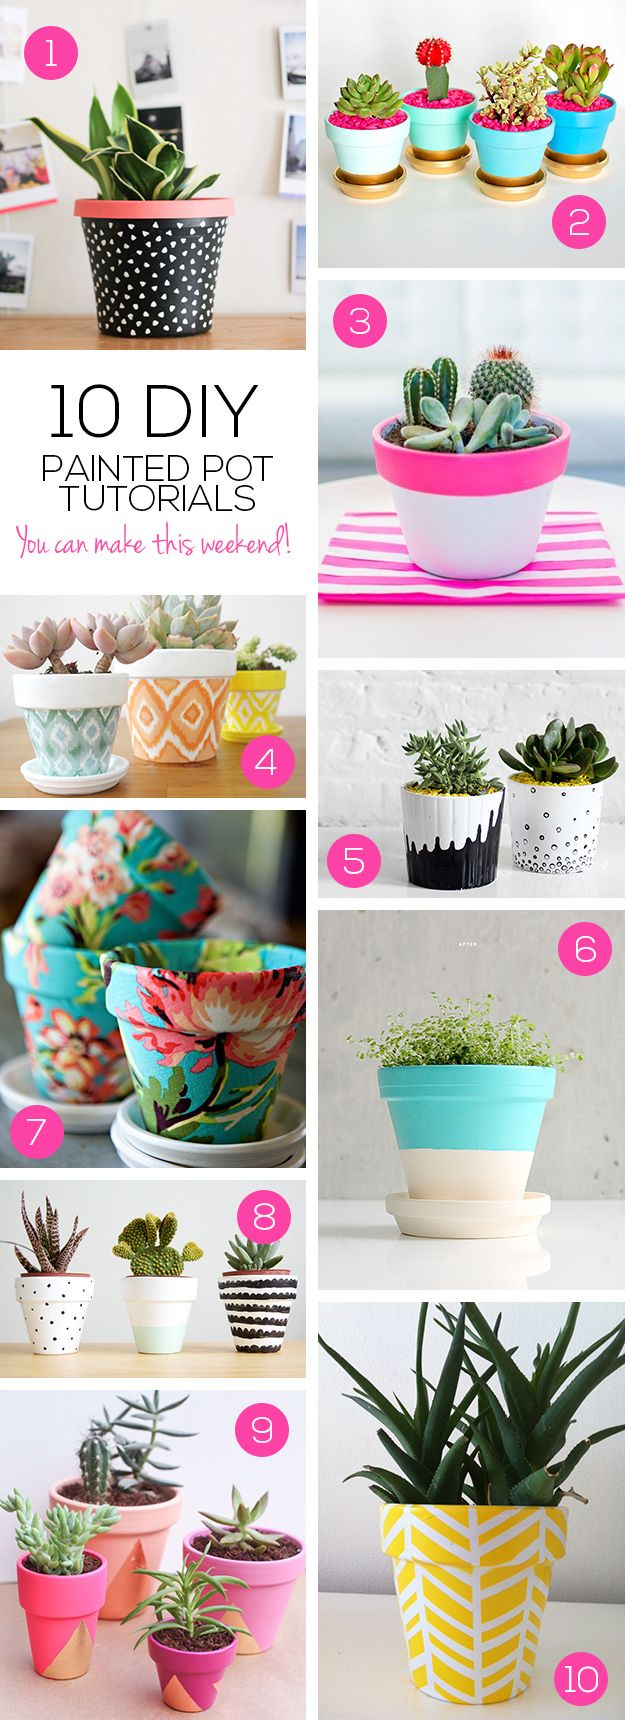 10 DIY Pretty Plant Pots You Can Create This Weekend #diy #garden #pot